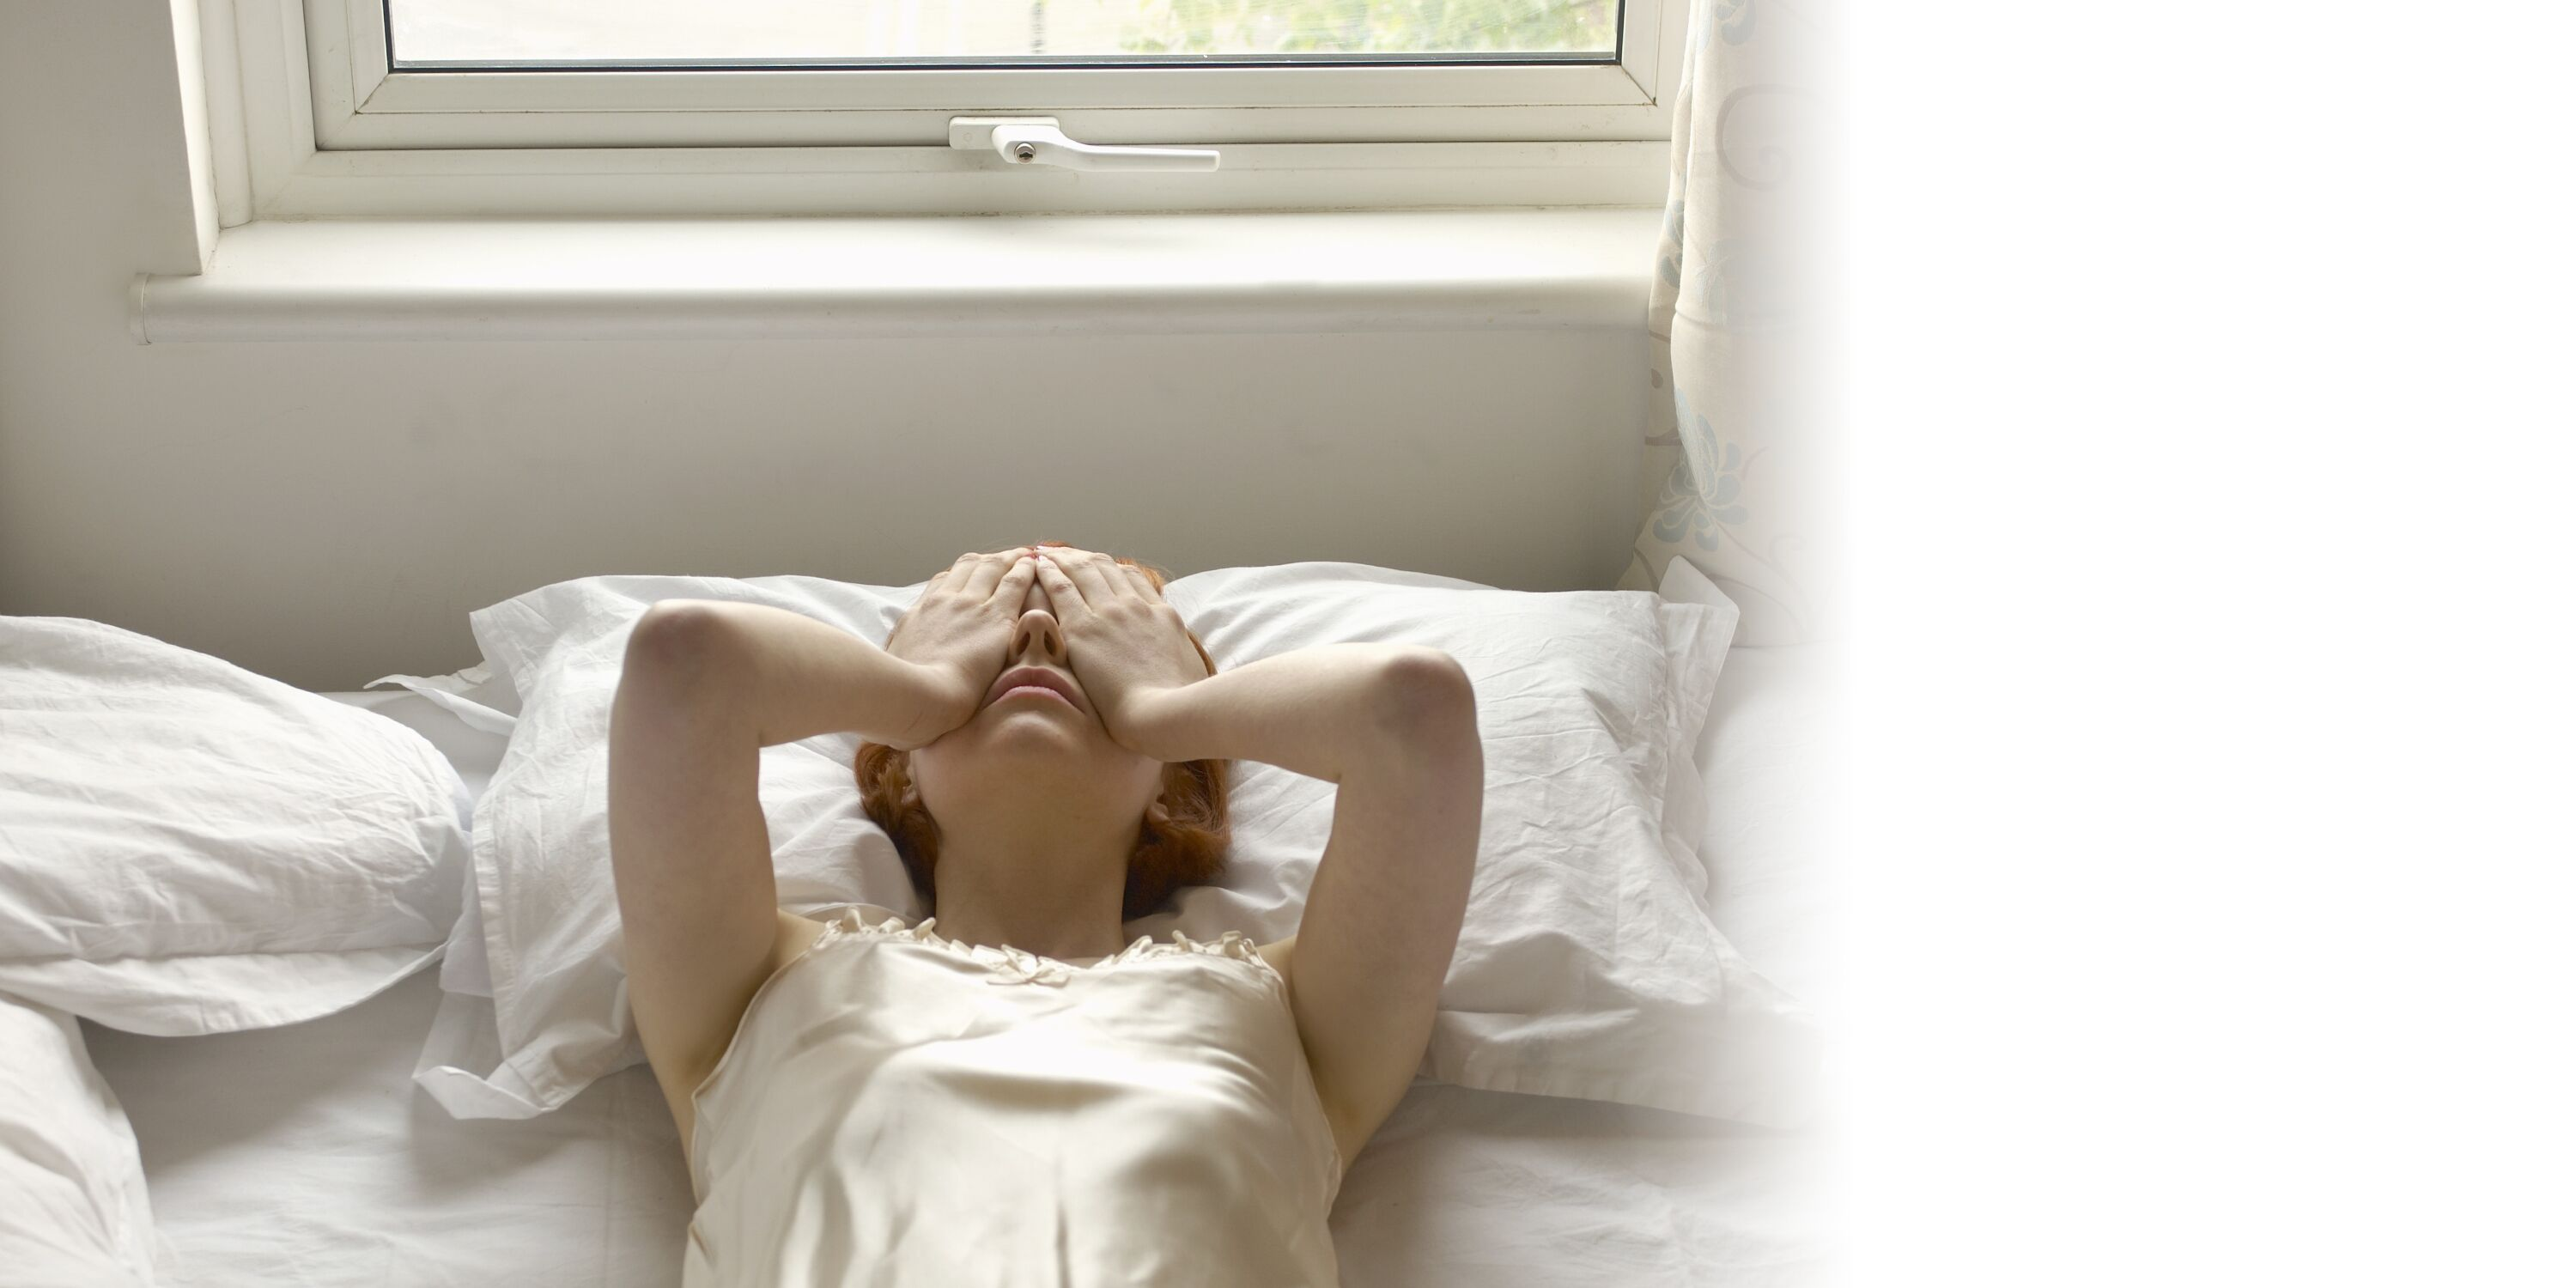 A woman lays in bed with her hands covering her face.